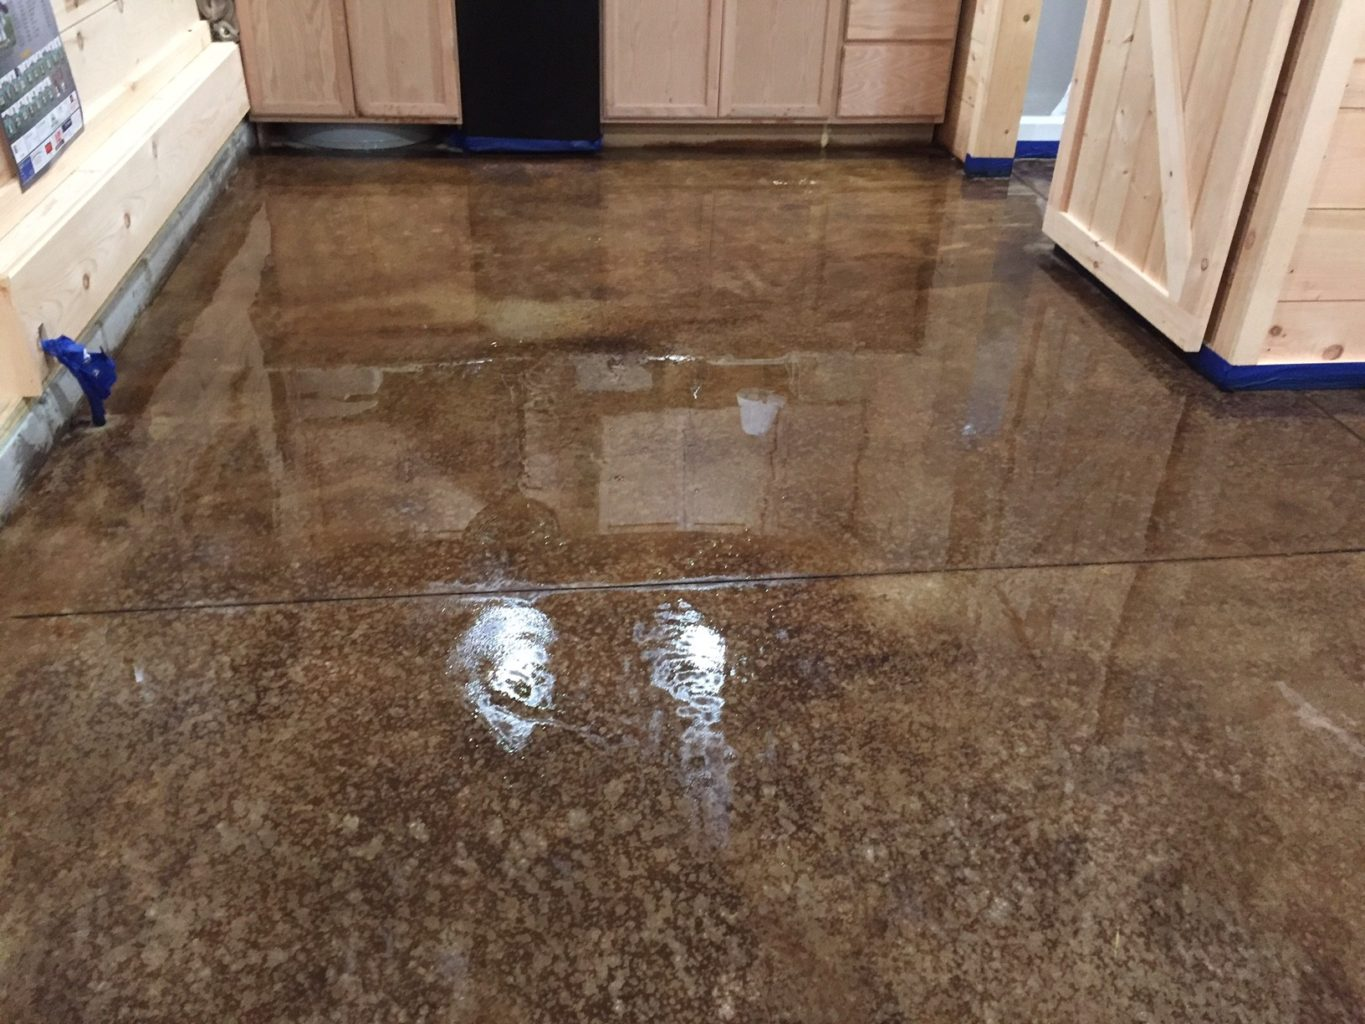 Stained Concrete Floors In Homes : Acid staining our concrete floors an expensive look at